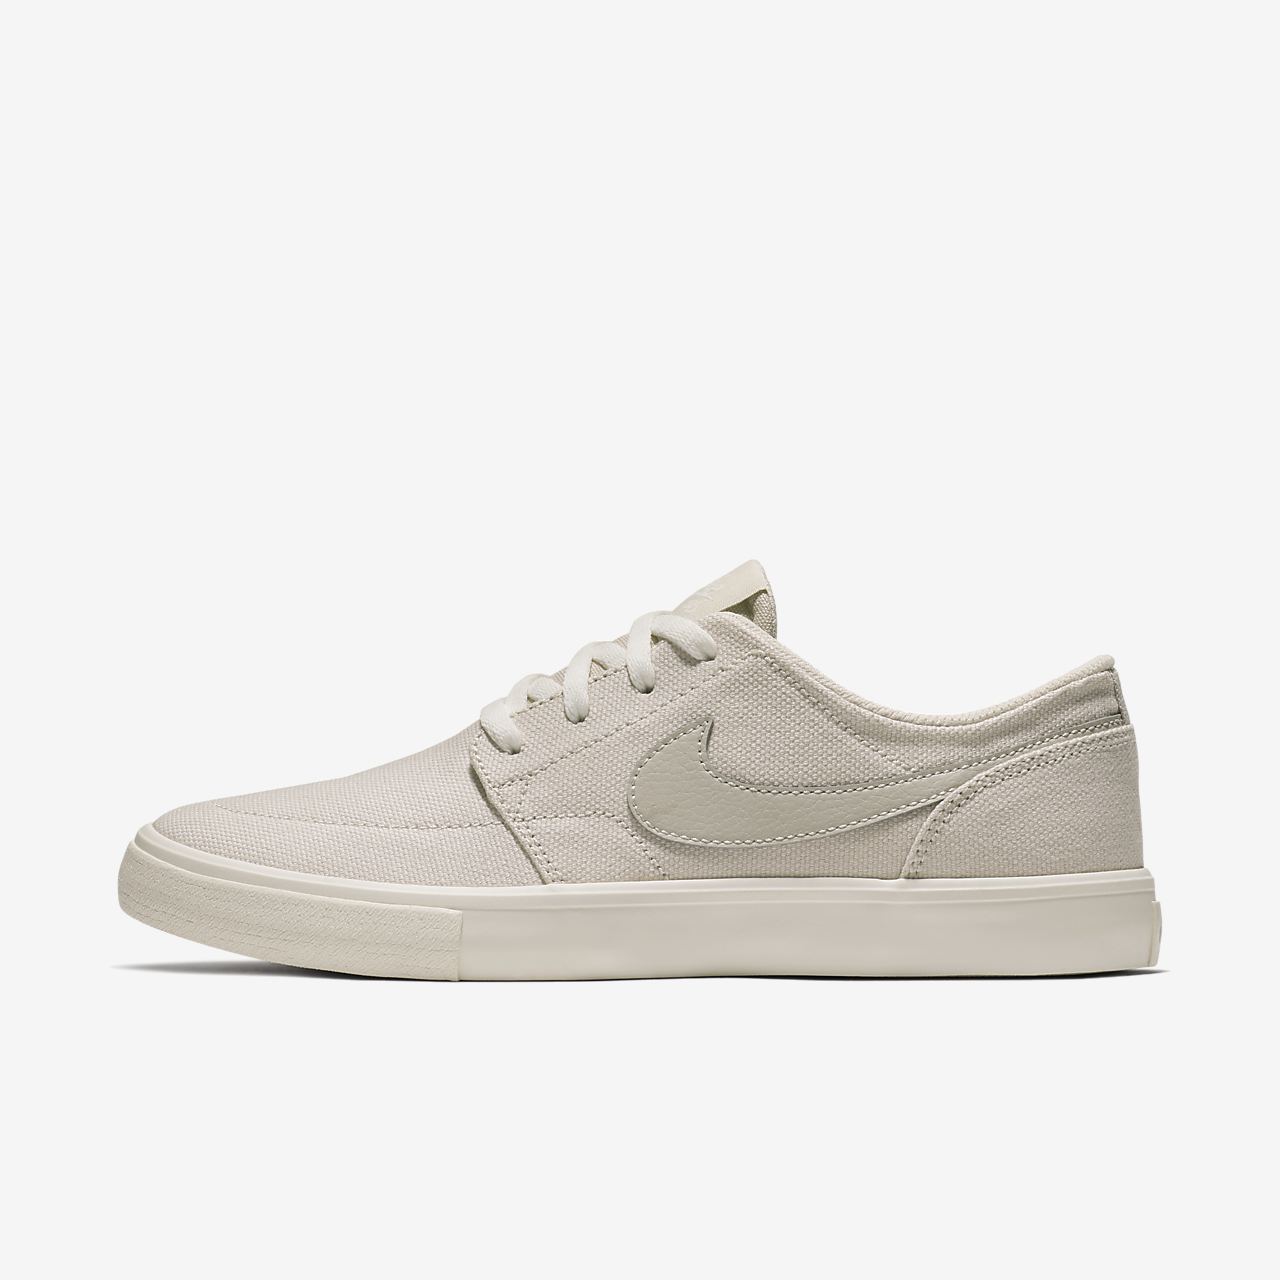 Nike SB Portmore II Women's Skateboarding Shoes White/Black vX6131X